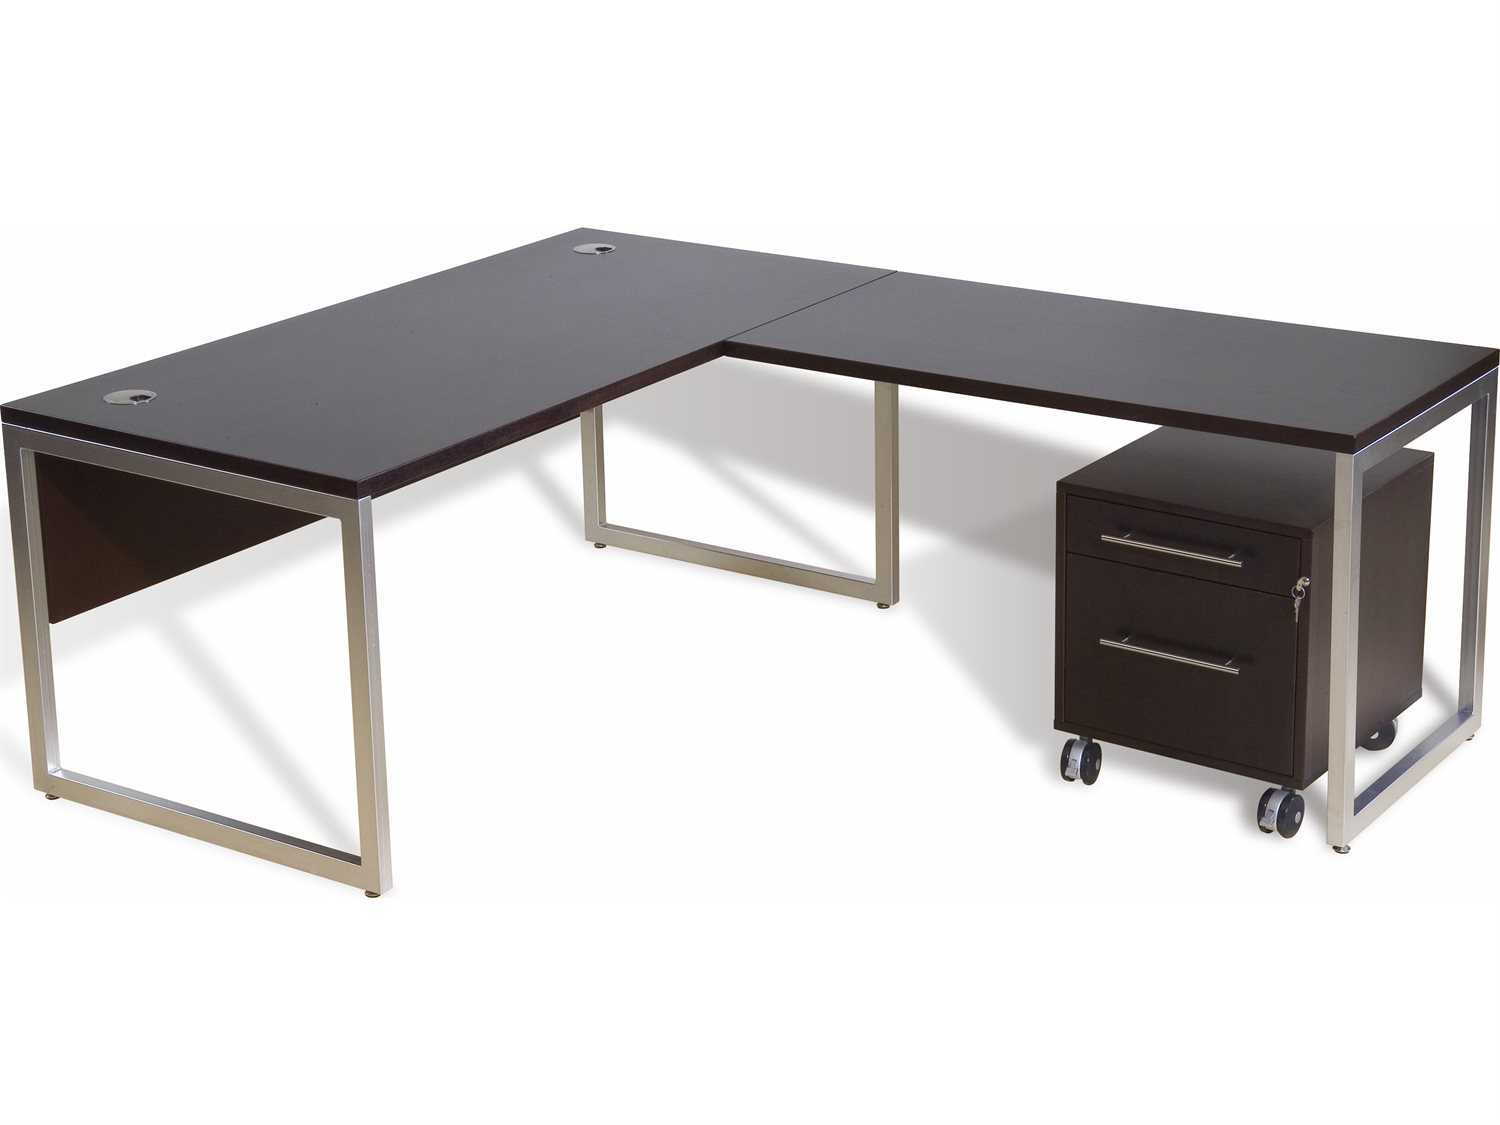 Jesper office 9000 collection 63 39 39 x 80 39 39 l shaped desk with return and mobile pedestal 9803 - Jesper office desk ...